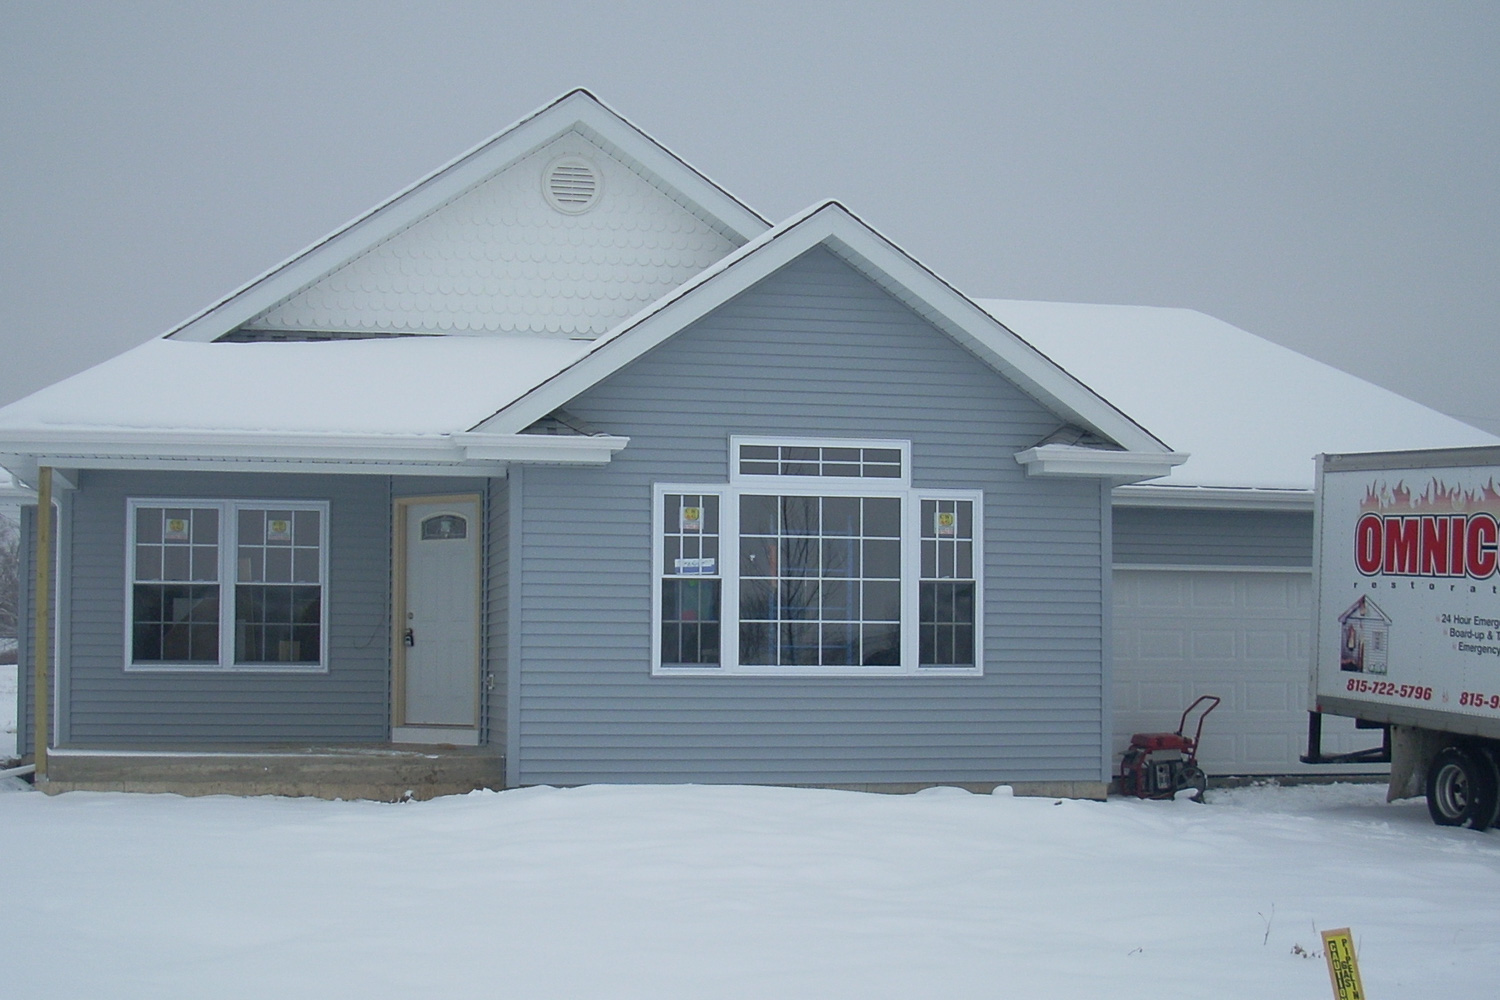 completed house rebuild. New house built after house fire left the old house un-salvageable.